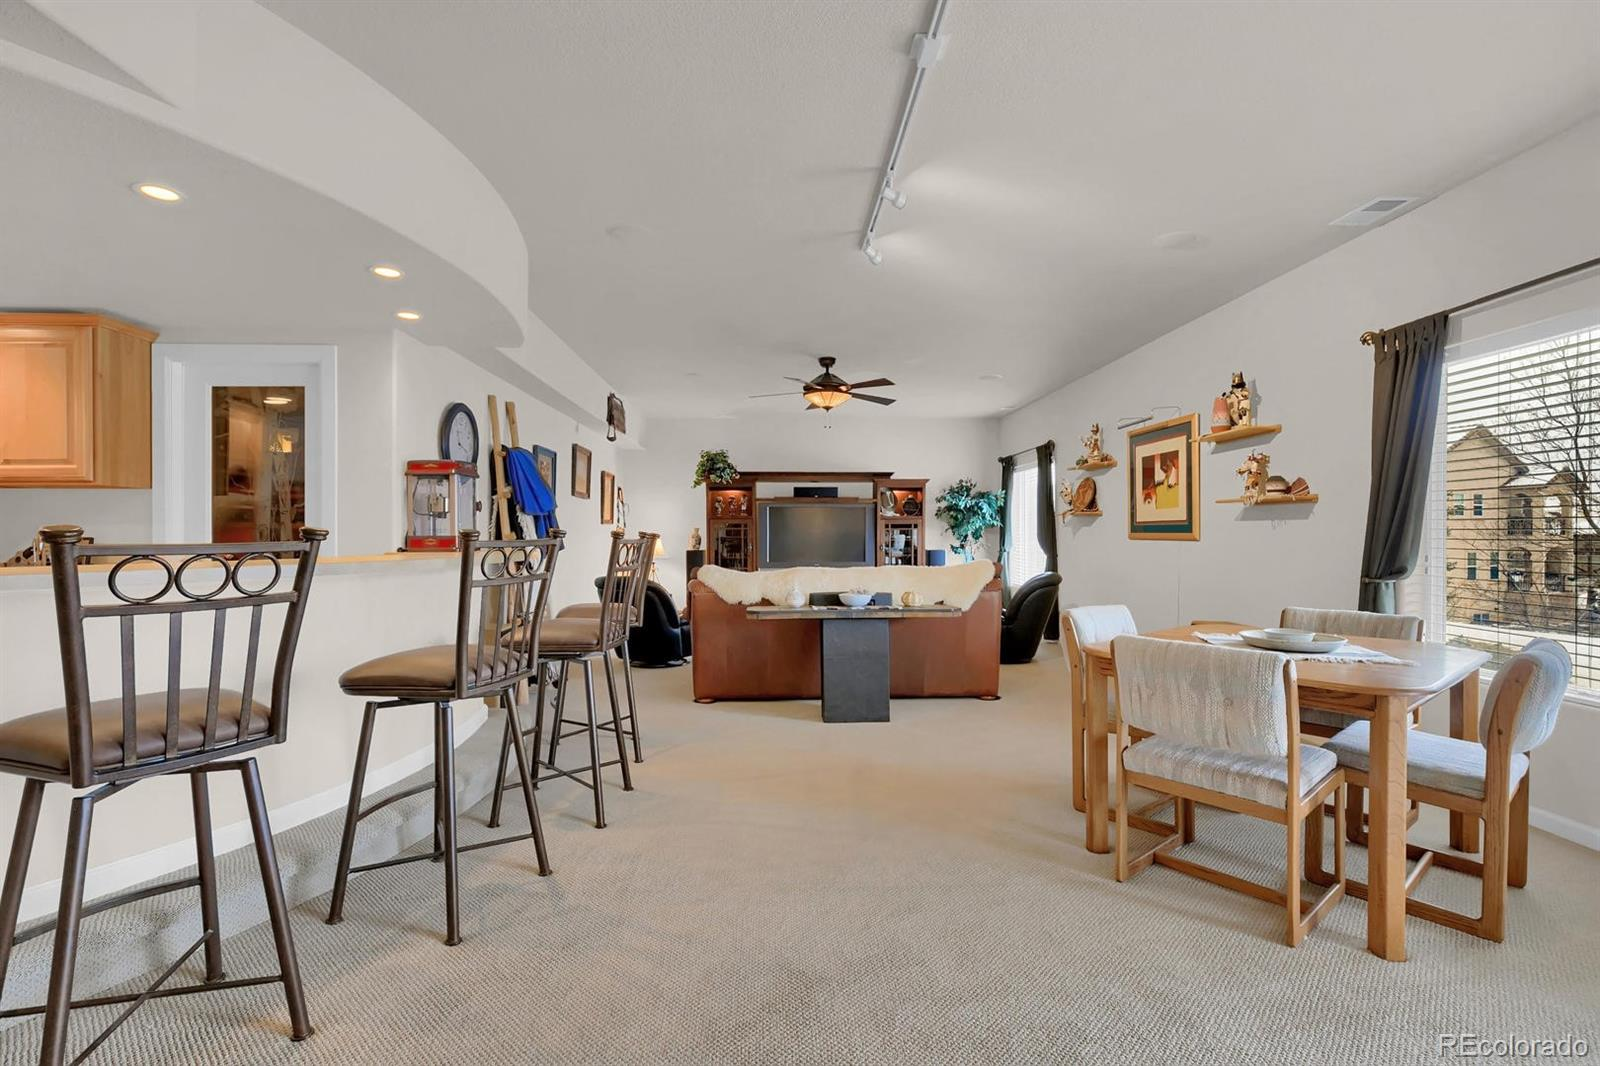 MLS# 5159811 - 31 - 207 Green Rock Place, Monument, CO 80132